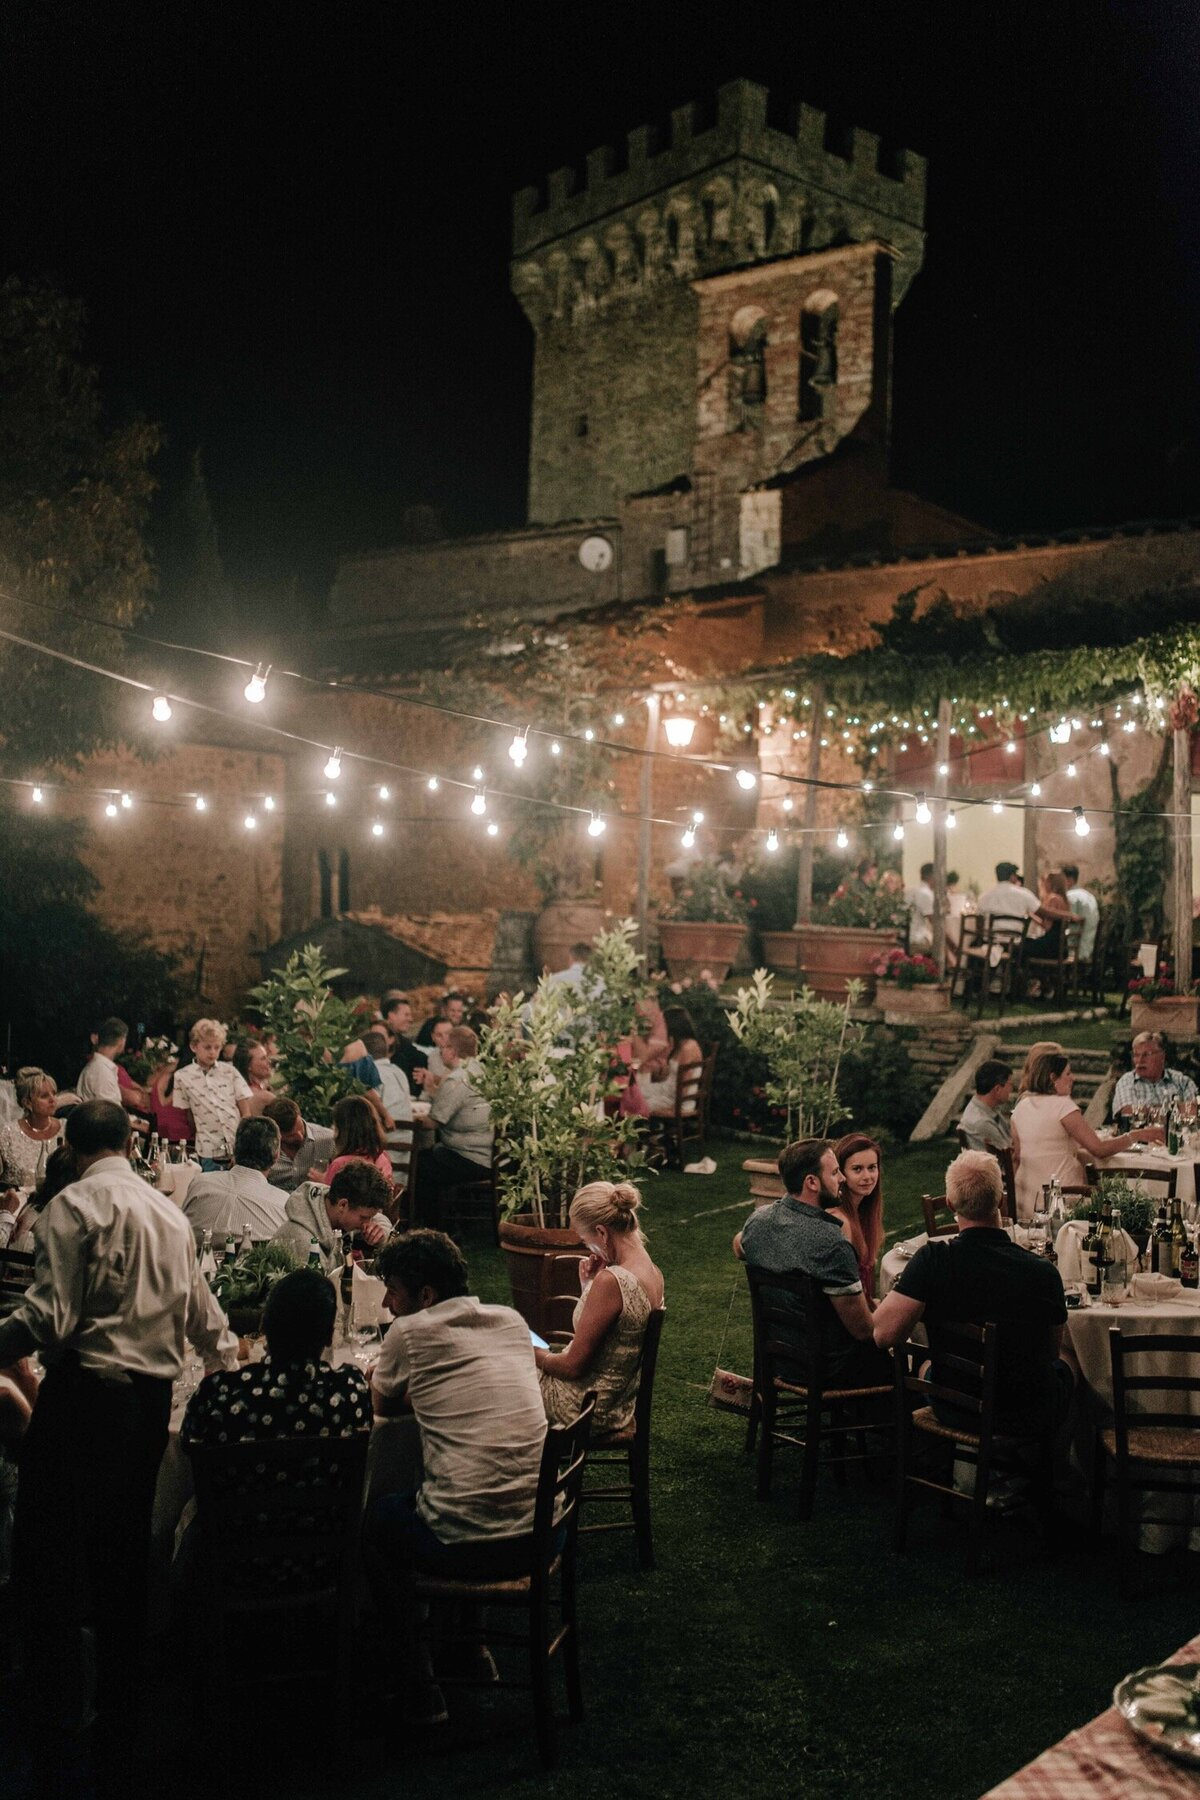 10_Tuscany_Luxury_Wedding_Photographer (10 von 37)_A stylish and elegant luxury wedding in Tuscany captured by Italy wedding photographer Flora and Grace.